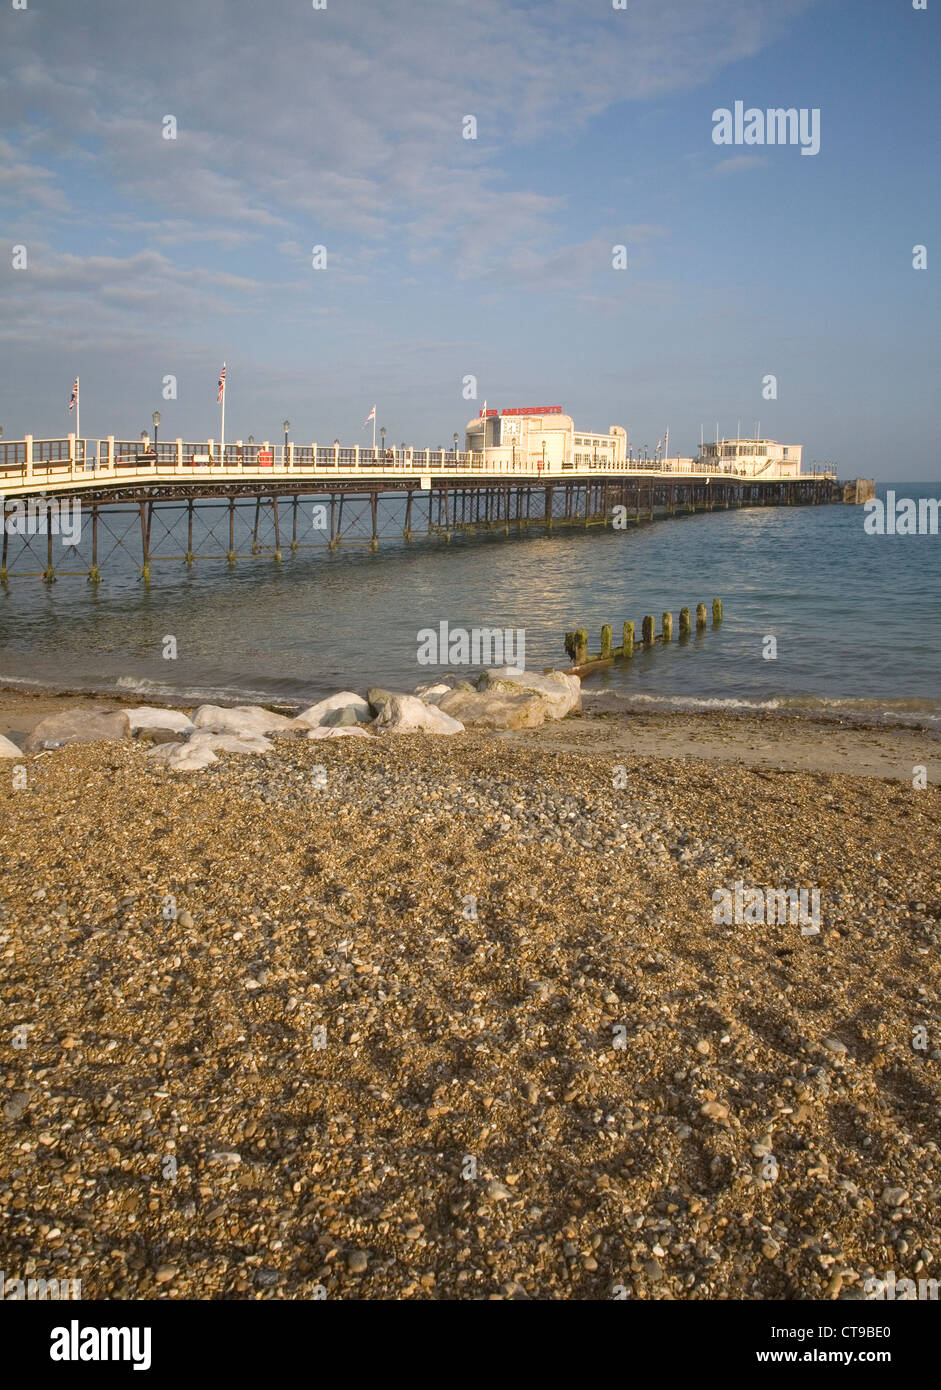 worthing pier on the east sussex coast - Stock Image